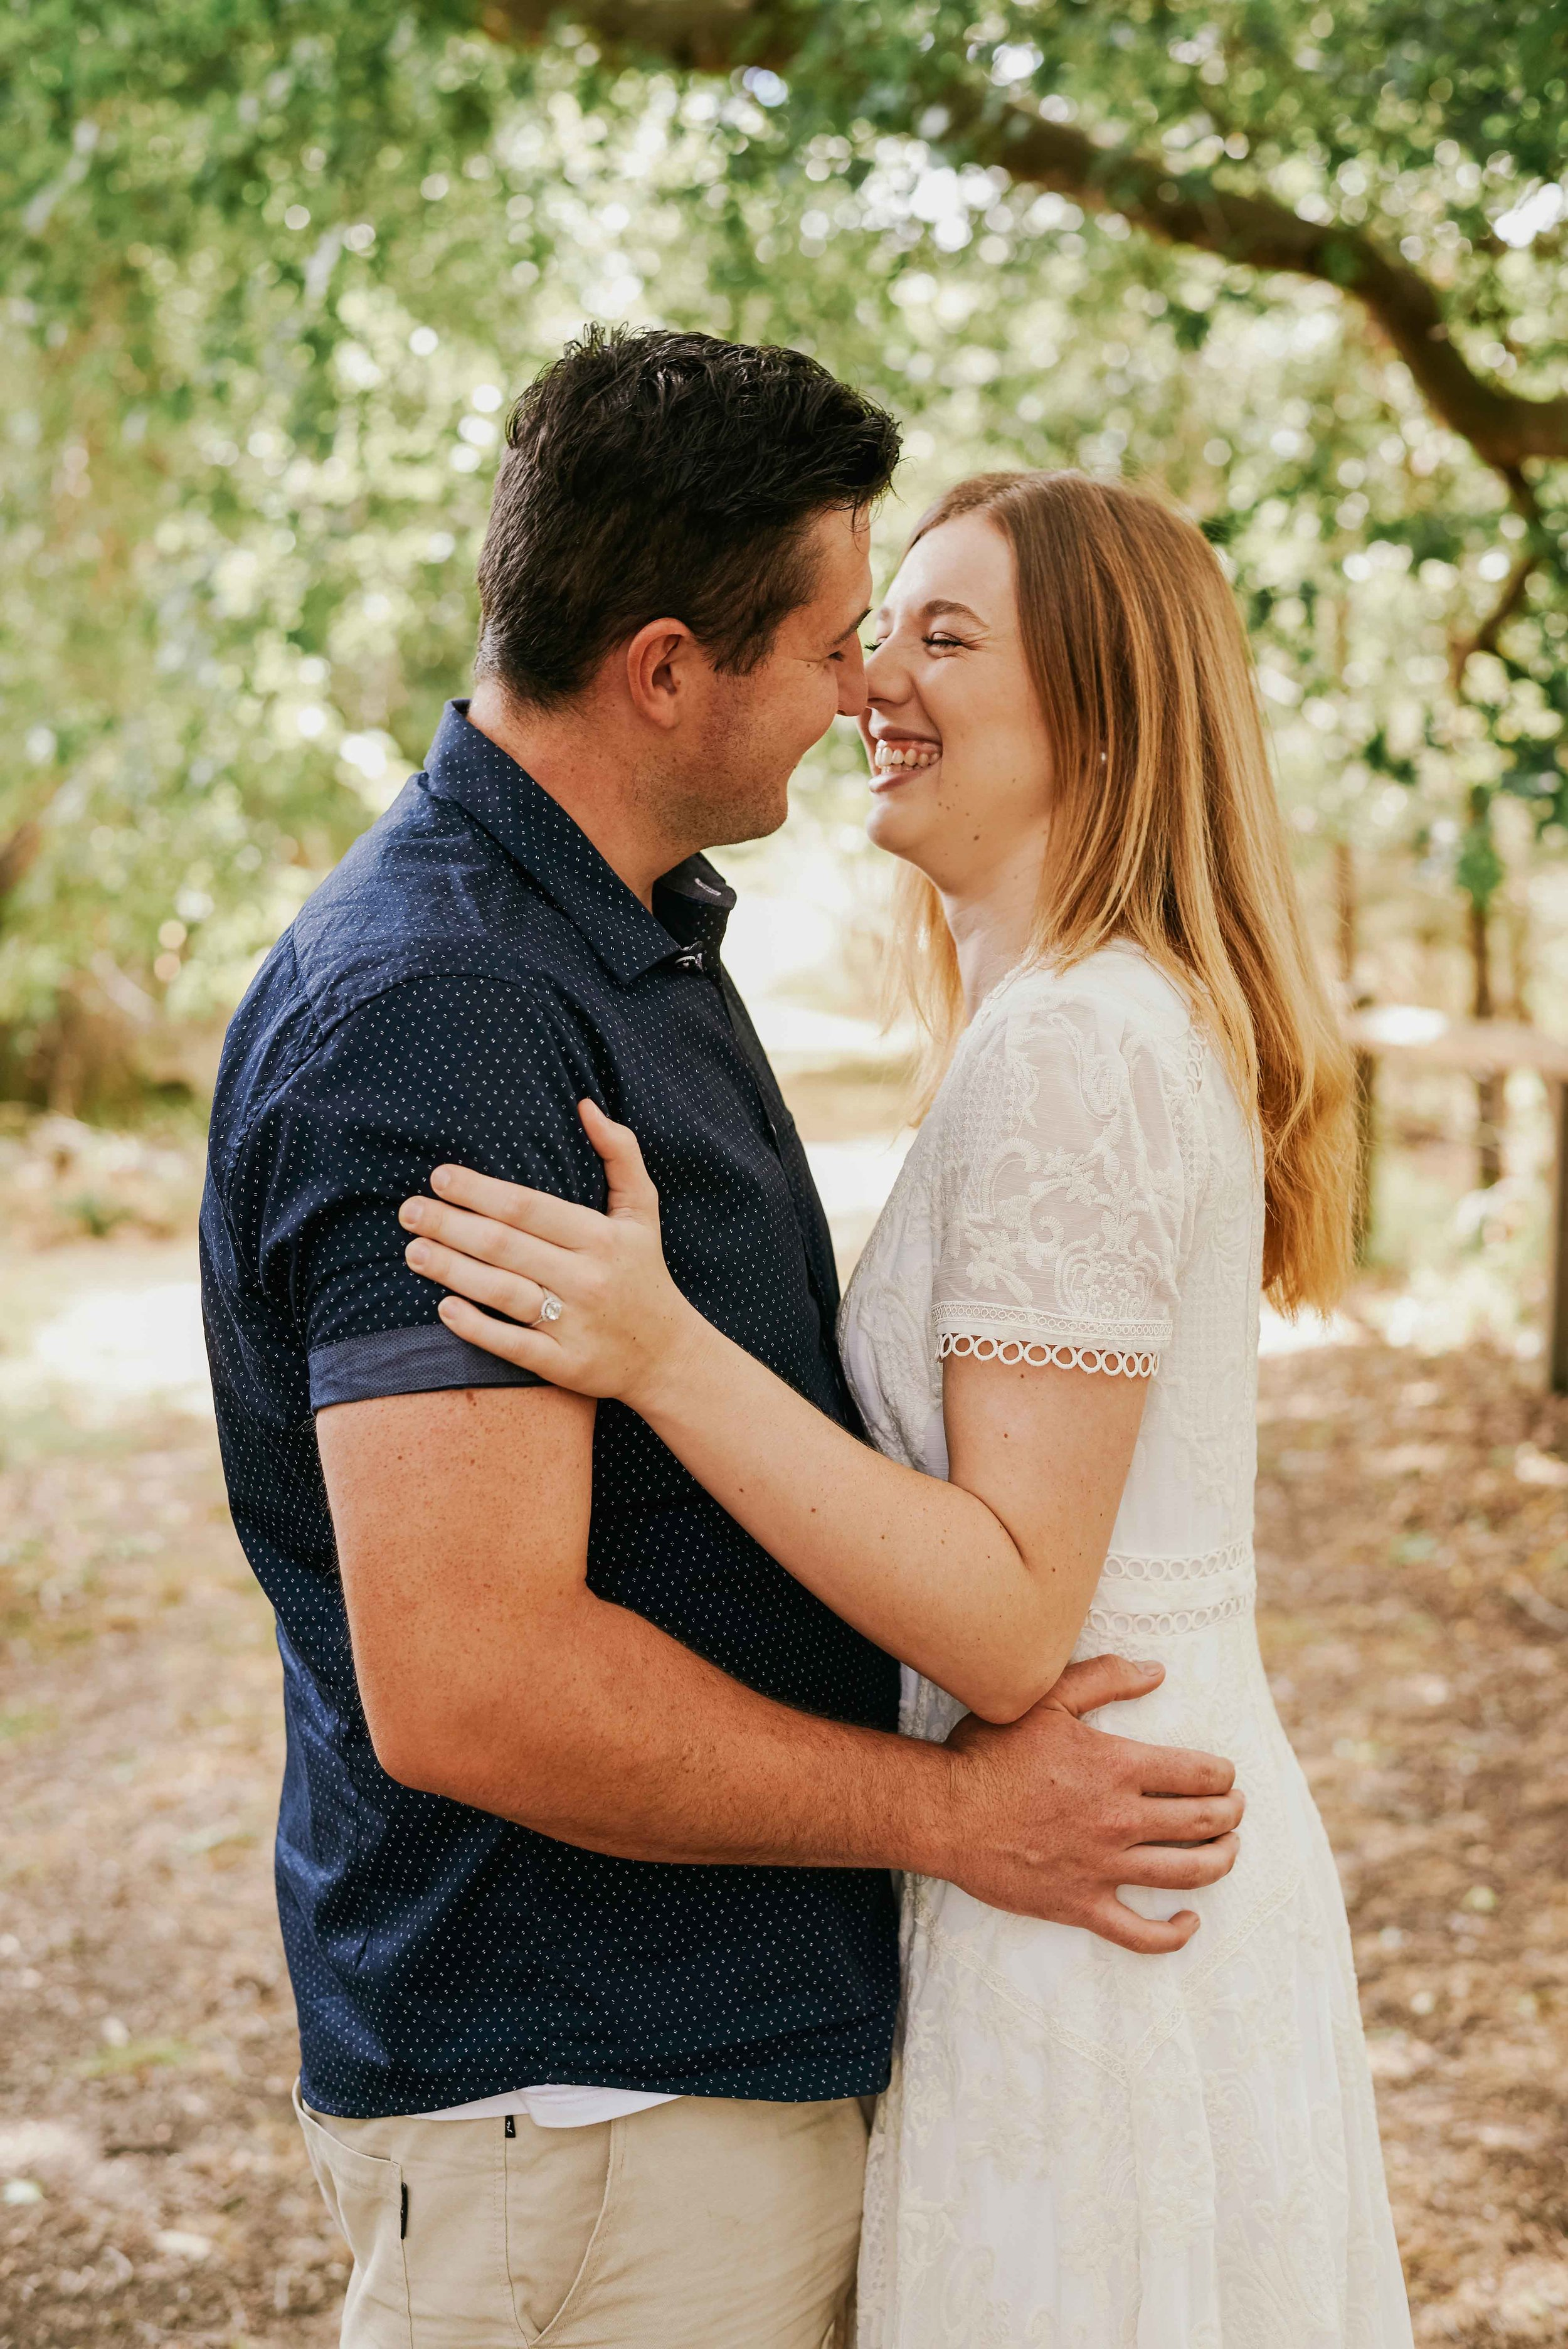 marissa-jade-photography-mornington-peninsula-wedding-photographer-natural-engagement-photography-red-hill-24.jpg